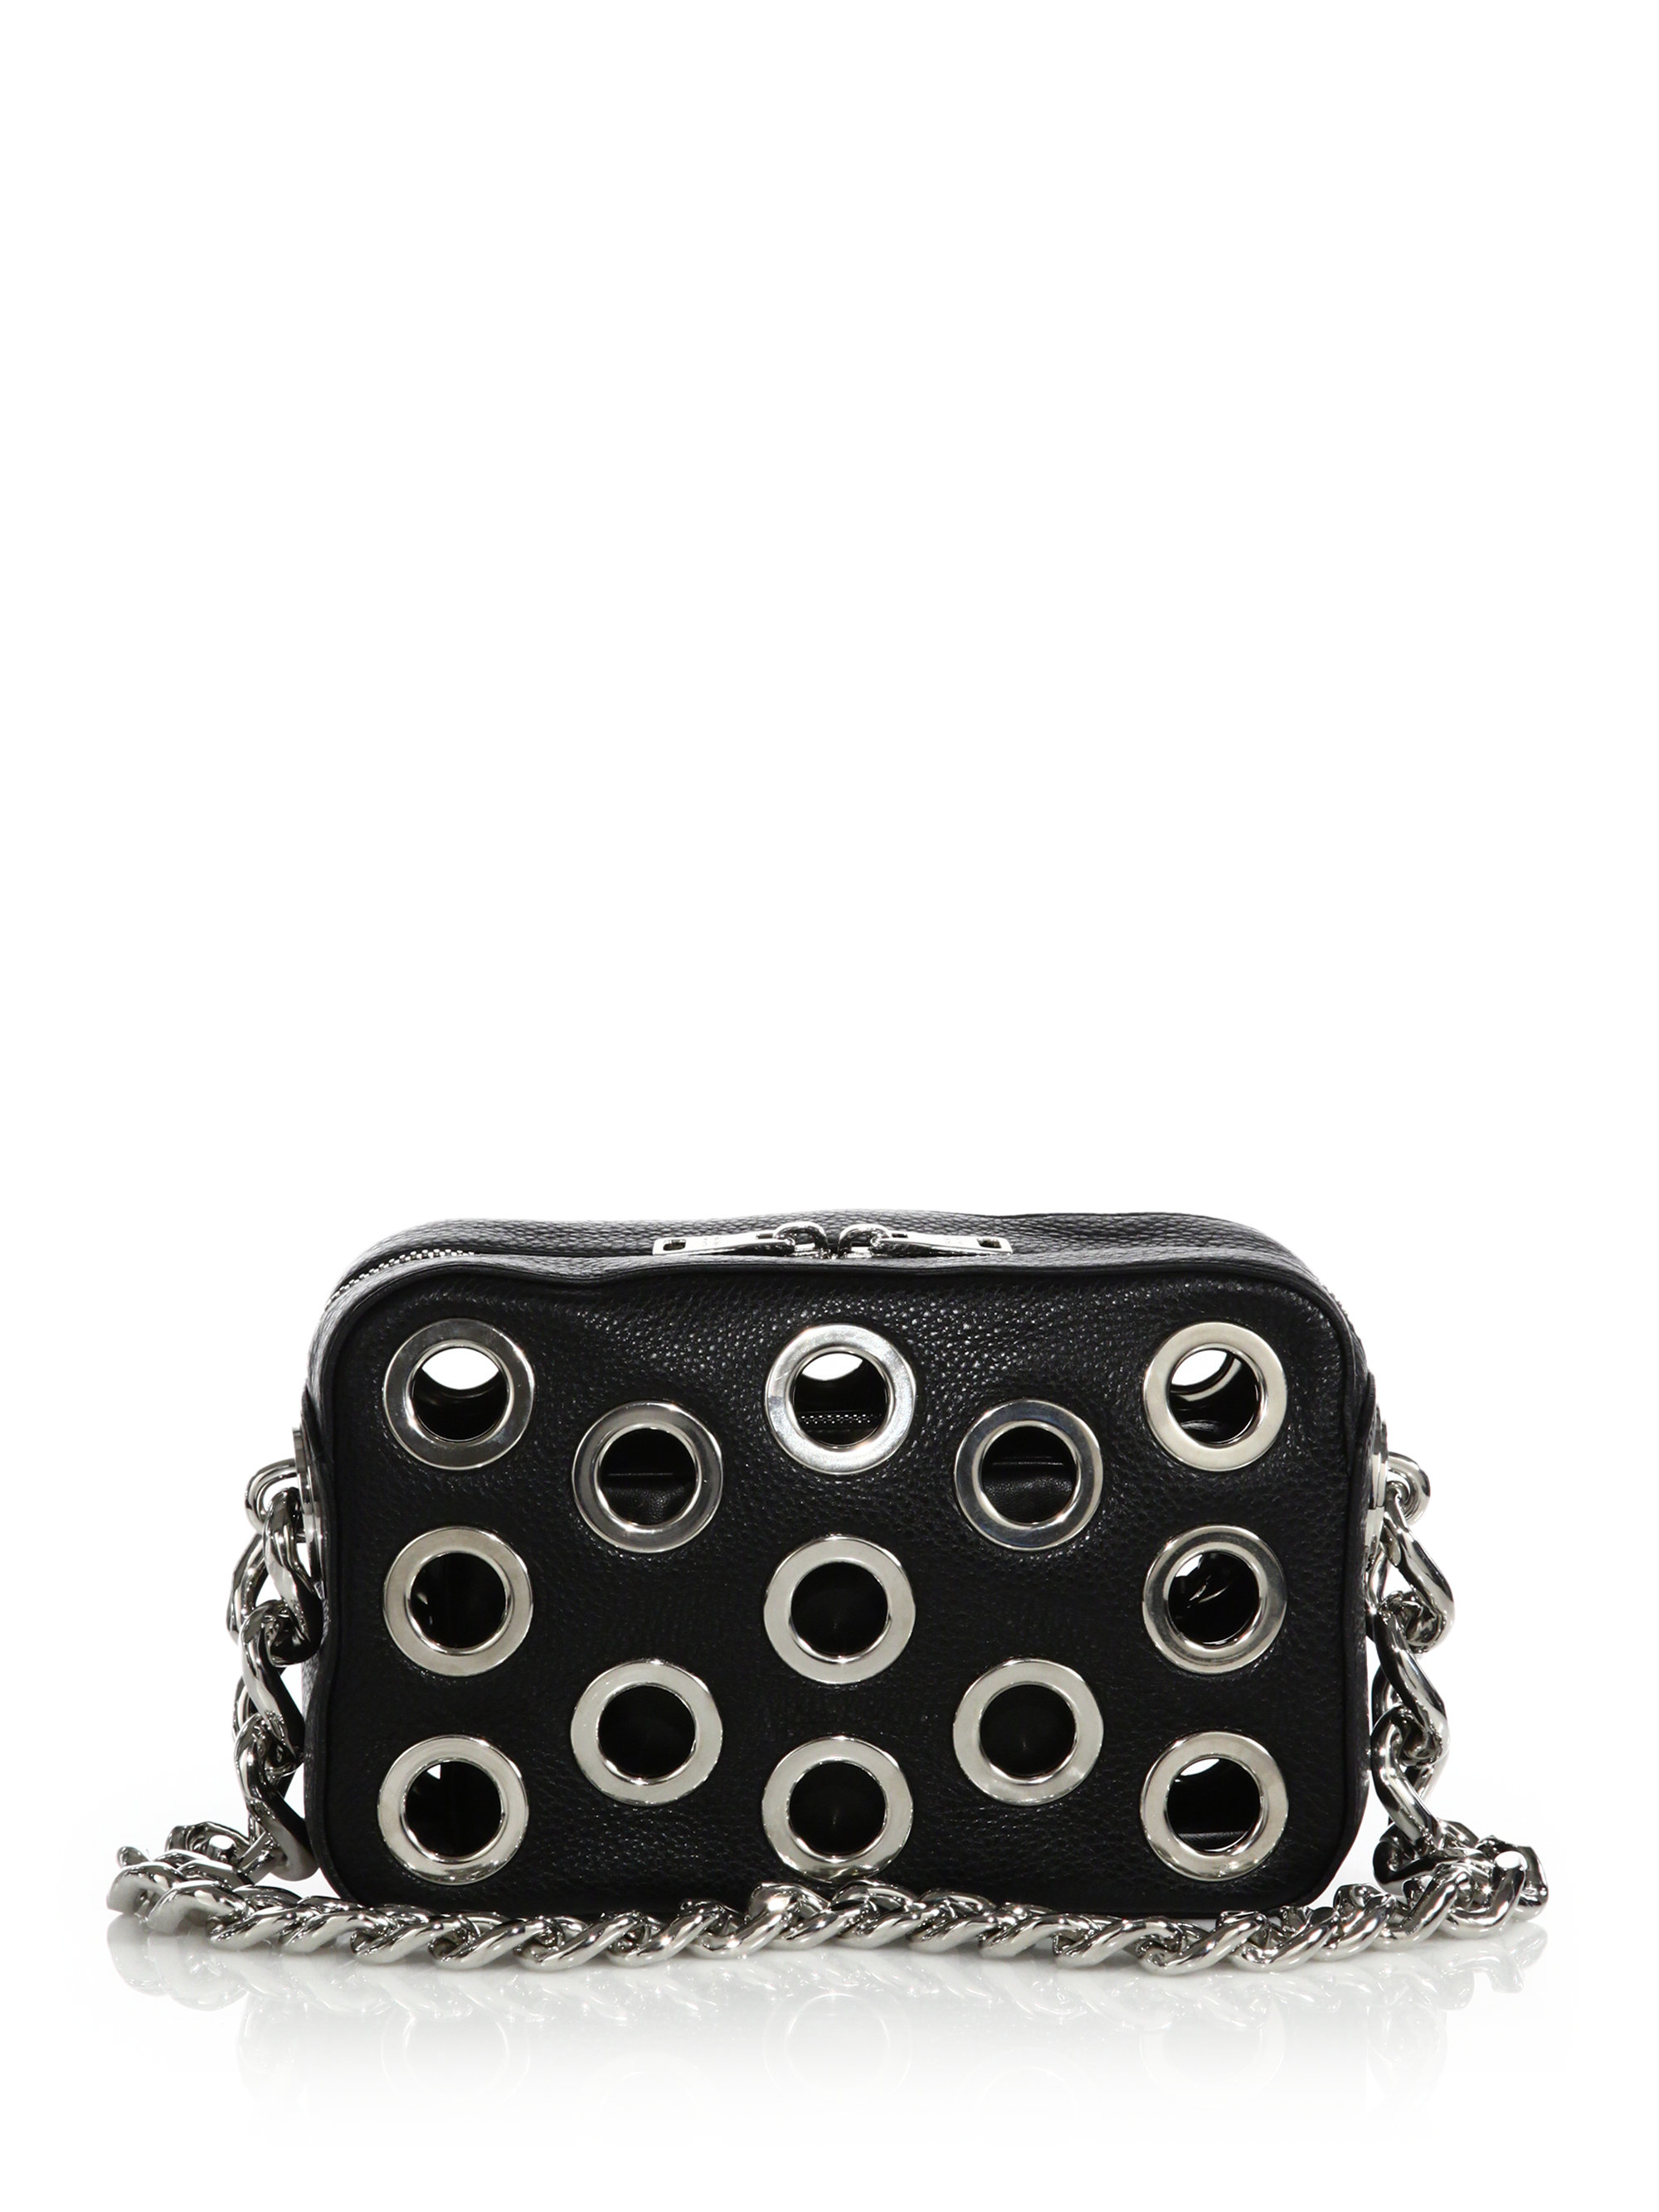 e0e76977ef62 1234 024a4 0a23f new style lyst prada daino chain bowler bag with grommets  in black 34afe 1ec26 ...